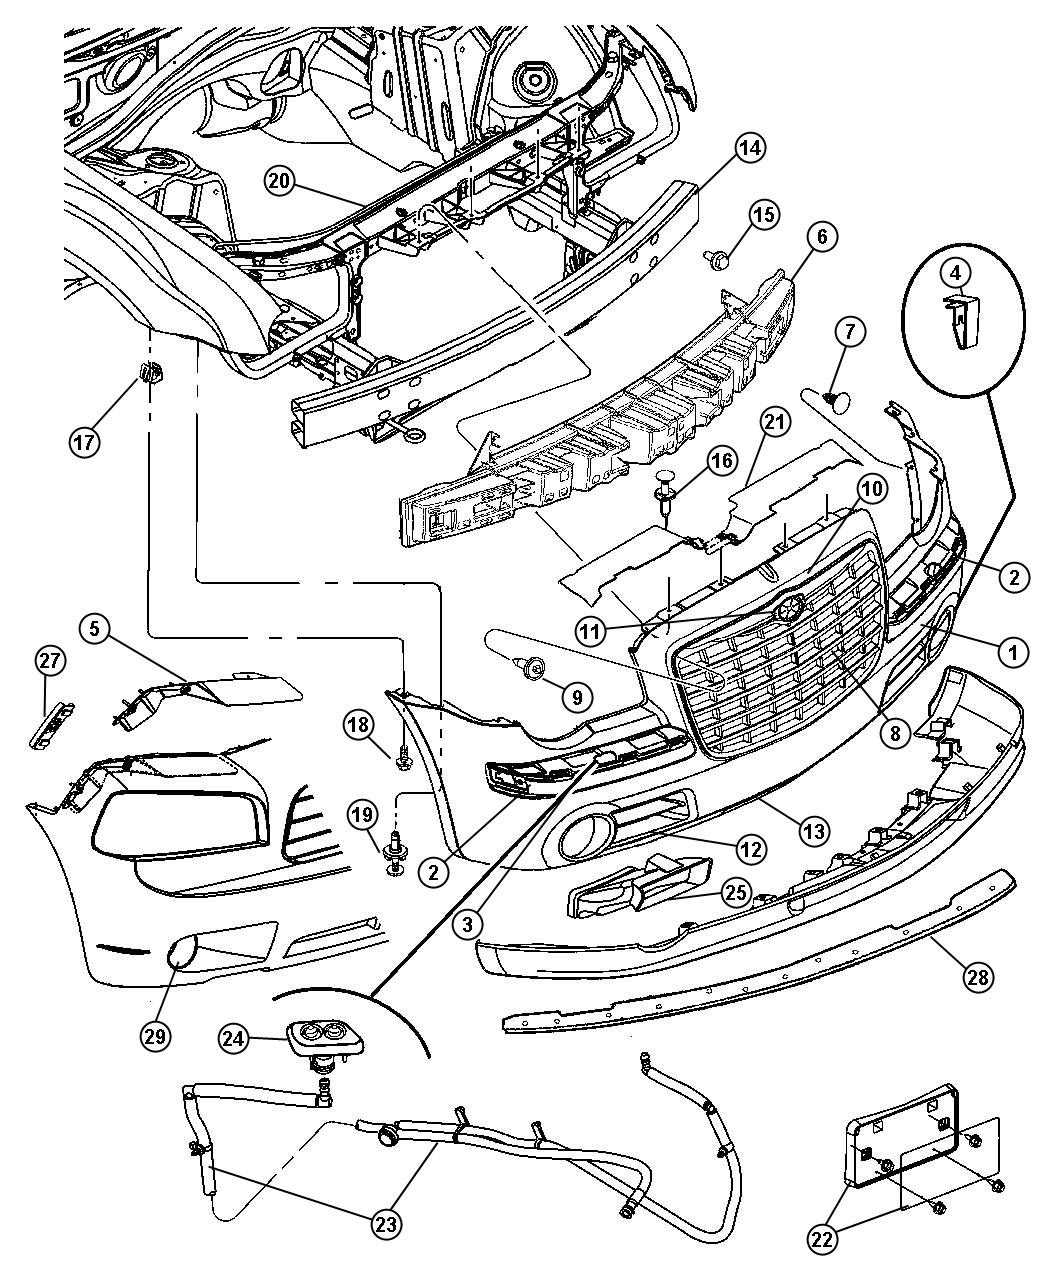 Diagram 1993 Chrysler Town And Country Motor Mount Diagram Full Version Hd Quality Mount Diagram Nudiagrams21 Japanfest It